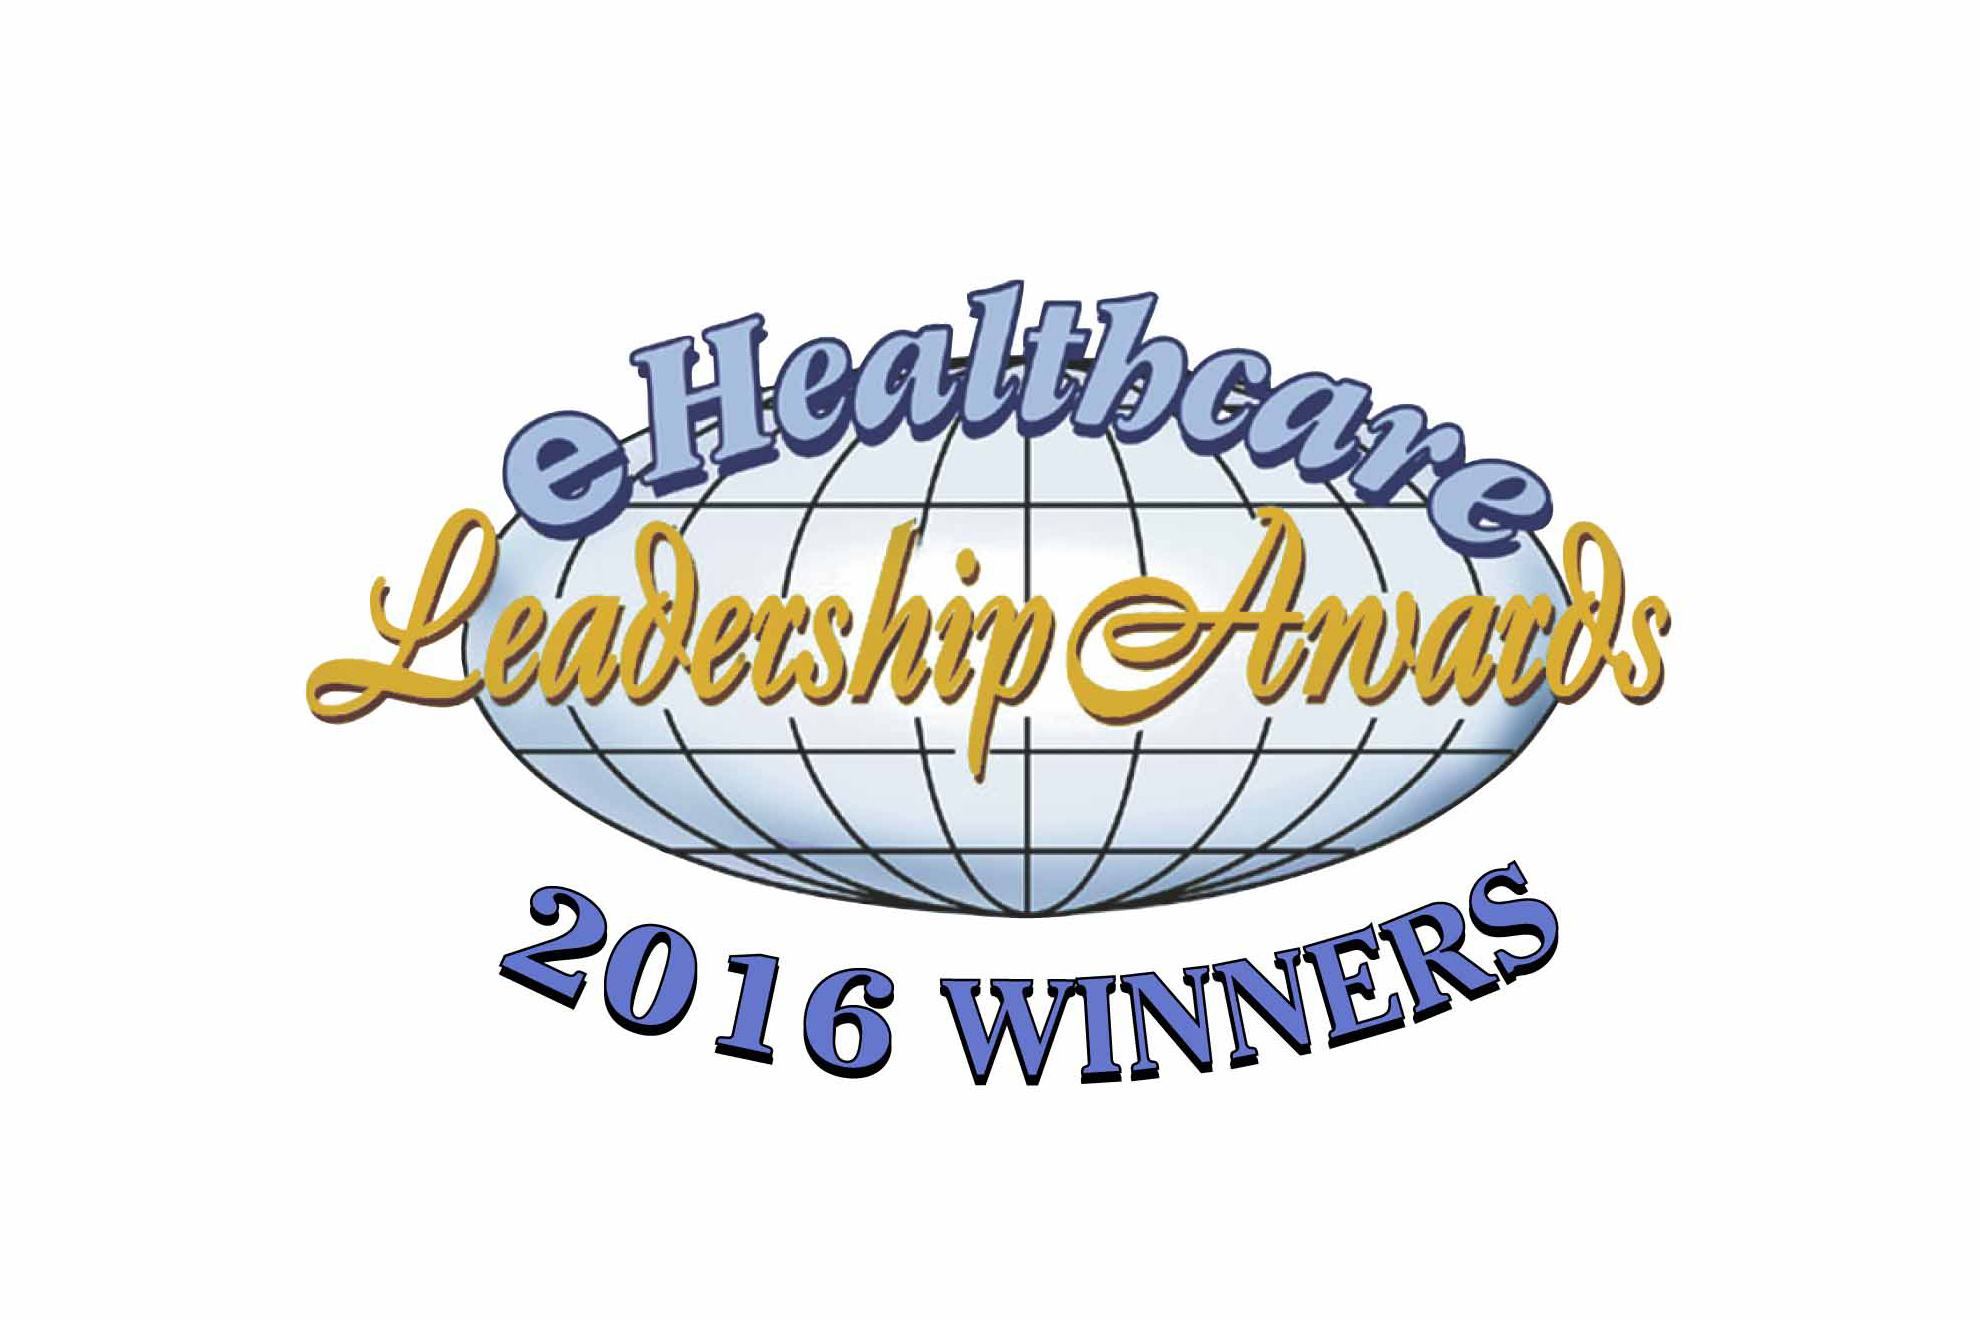 eHealthcase Leadership Awards 2016 Winners